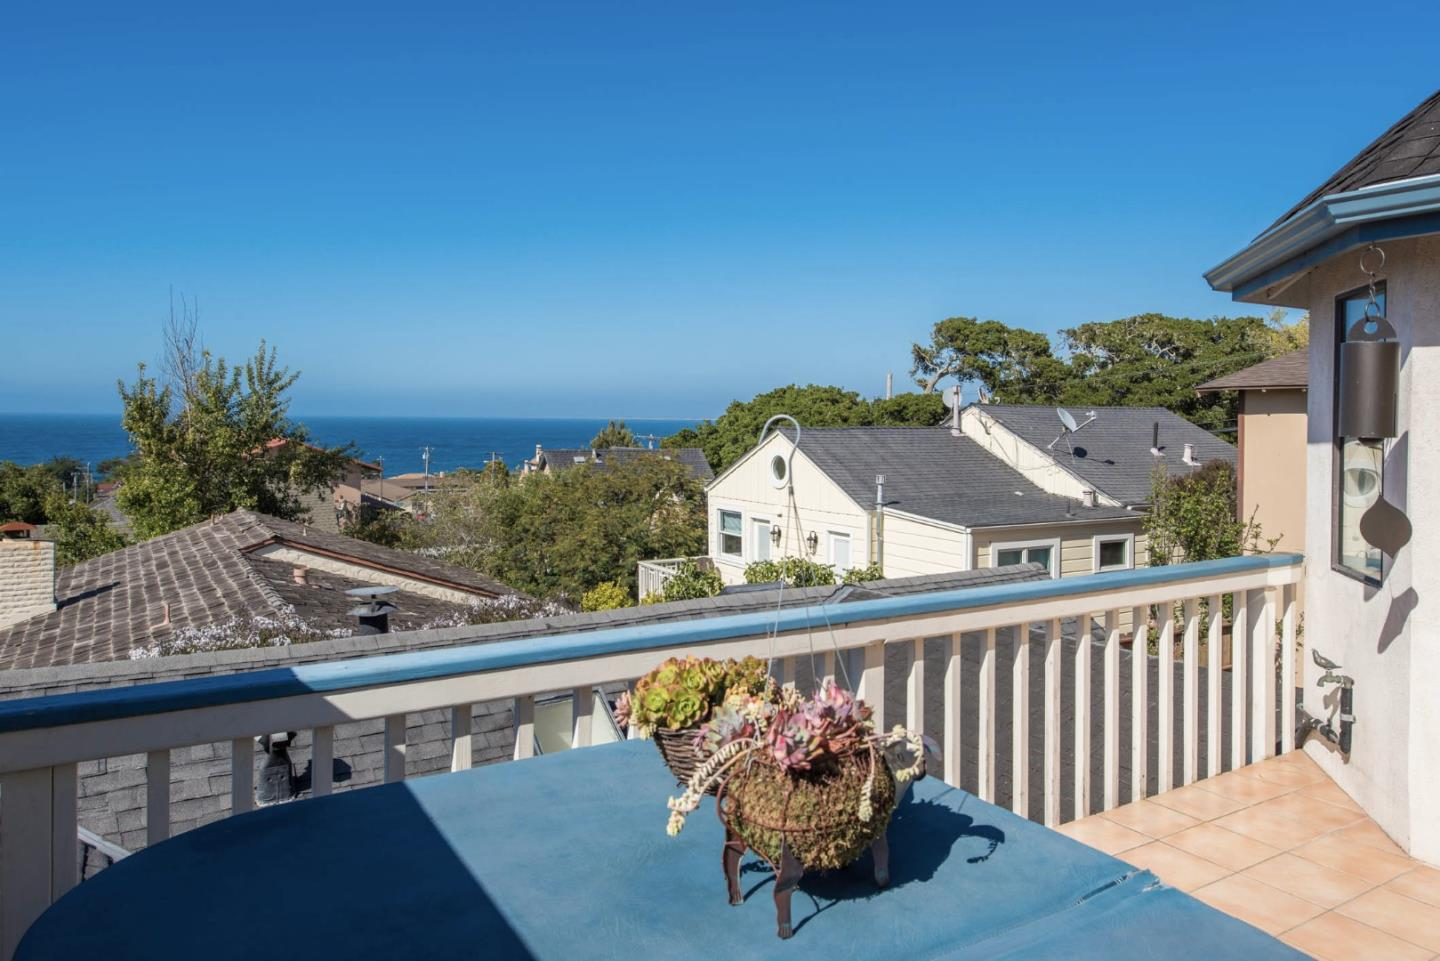 Additional photo for property listing at 211 10th Street  Pacific Grove, California 93950 Estados Unidos